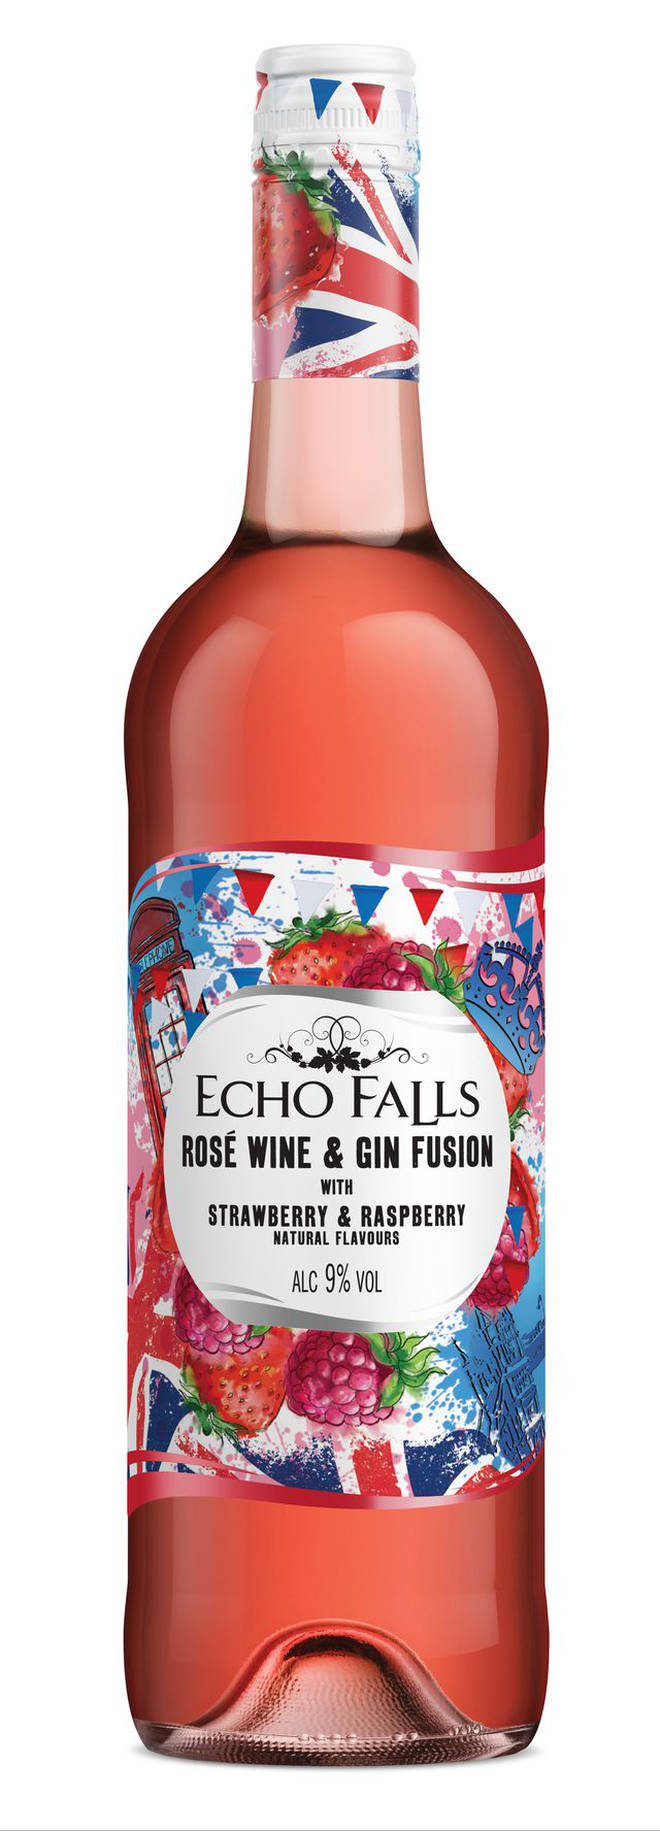 Echo Falls gin-infused rosé wine